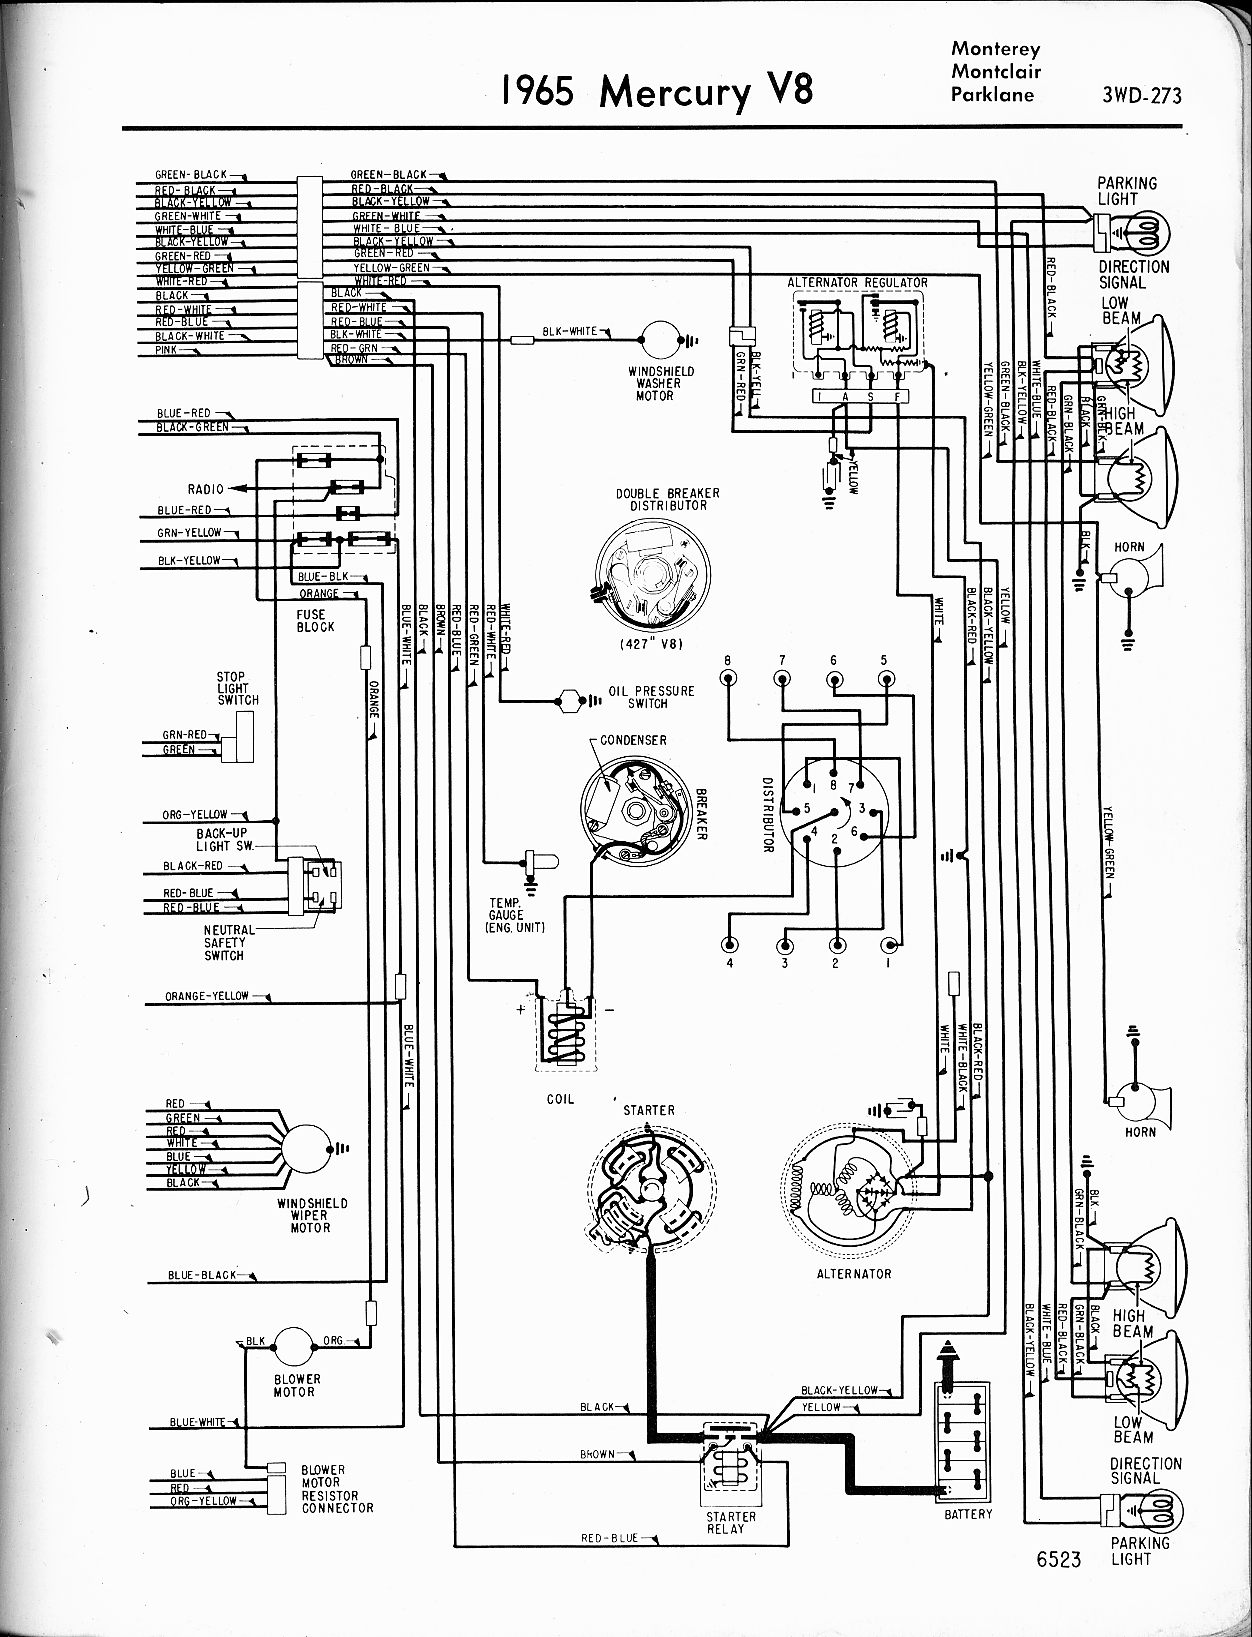 Mercury Marine Ignition Switch Wiring Diagram on mercury white ignition switch wiring diagram, mercury key switch wiring diagram, mercury marine kill switch, mercury outboard control wiring diagram, mercury marine ignition switch connector,